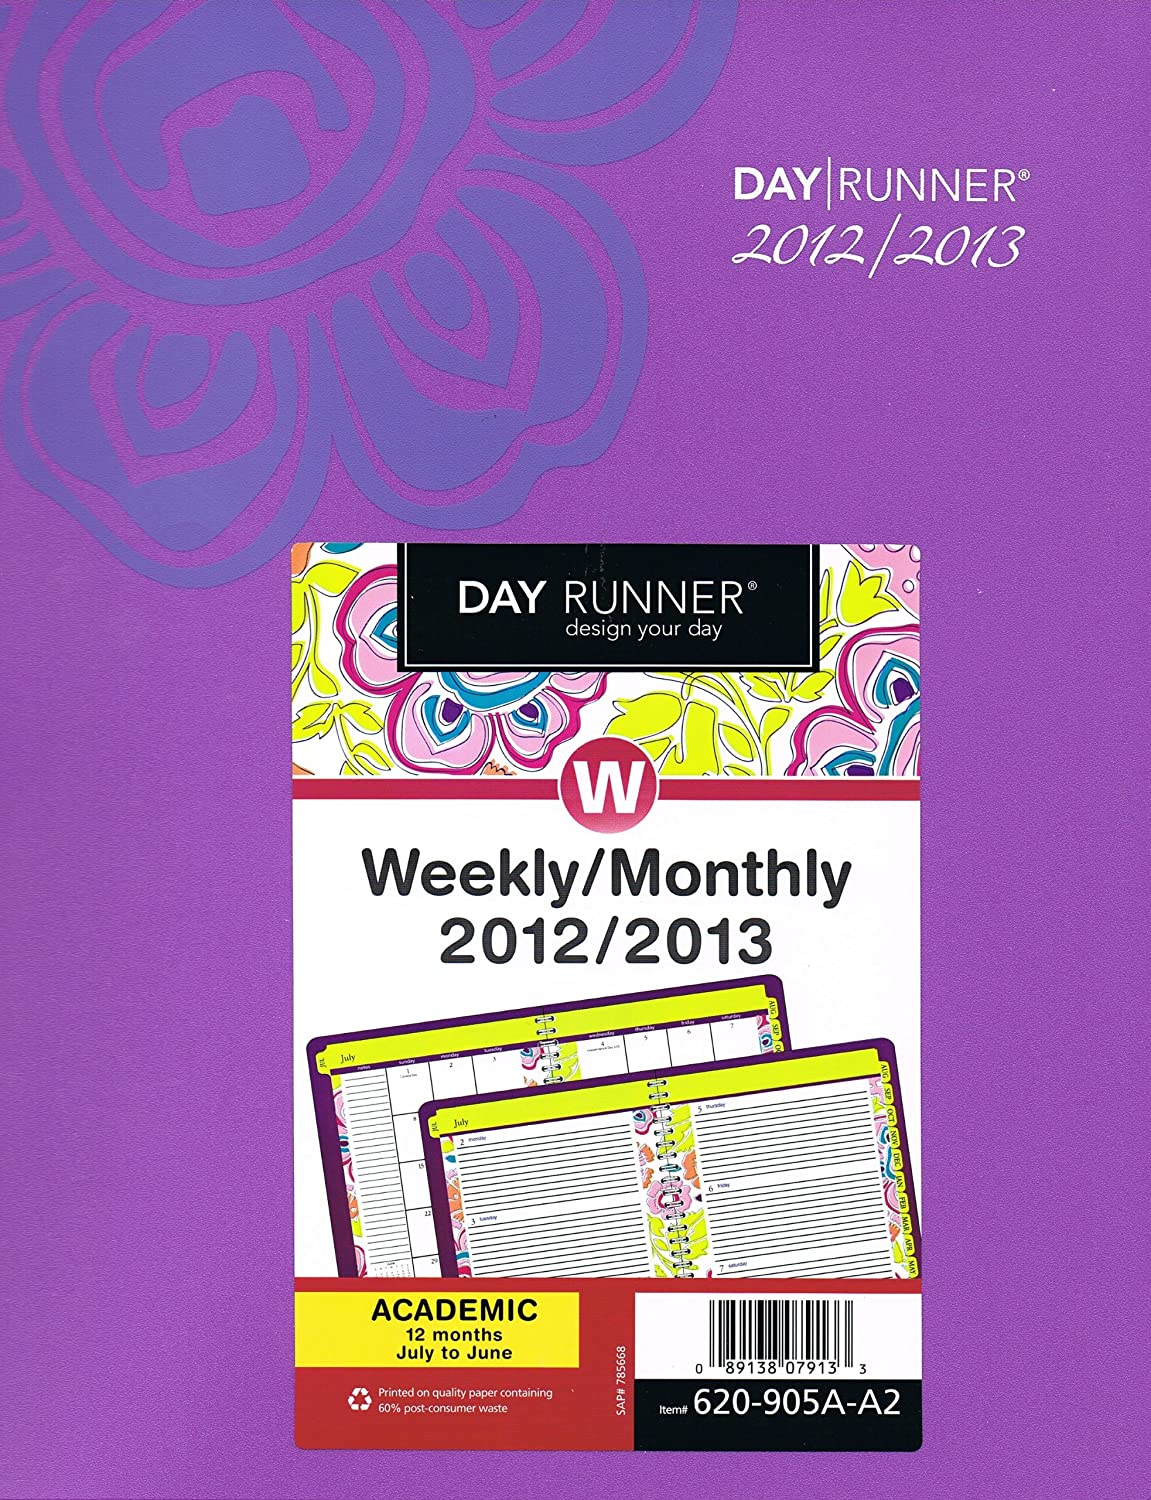 Amazon.com : Day Runner Good Vibrations Weekly/Monthly ...